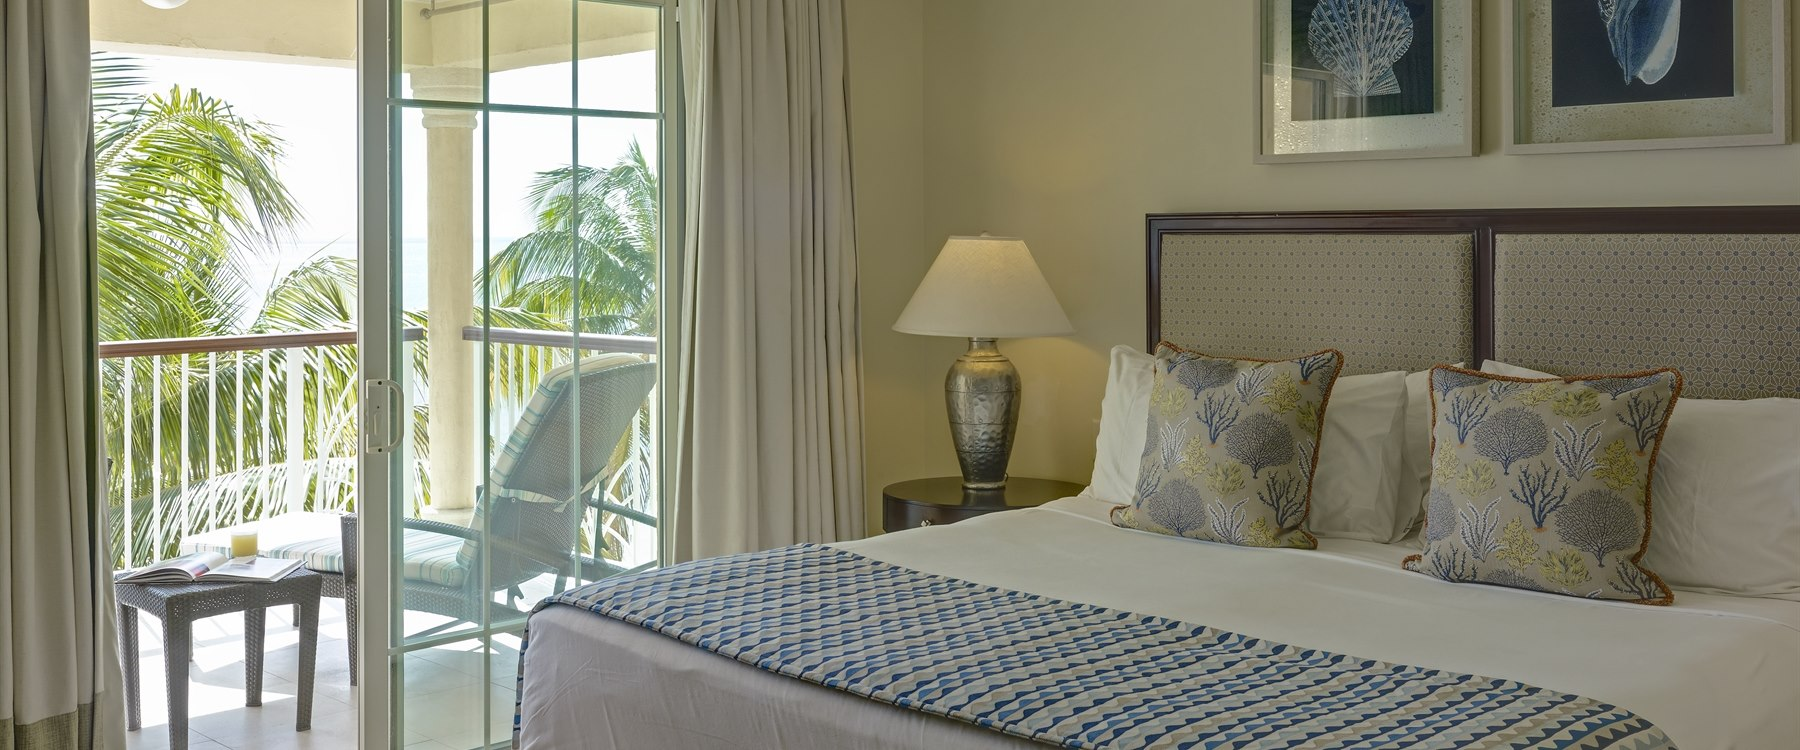 Master bedroom in Beachfront Villa at The Landings Resort and Spa by Elegant Hotels